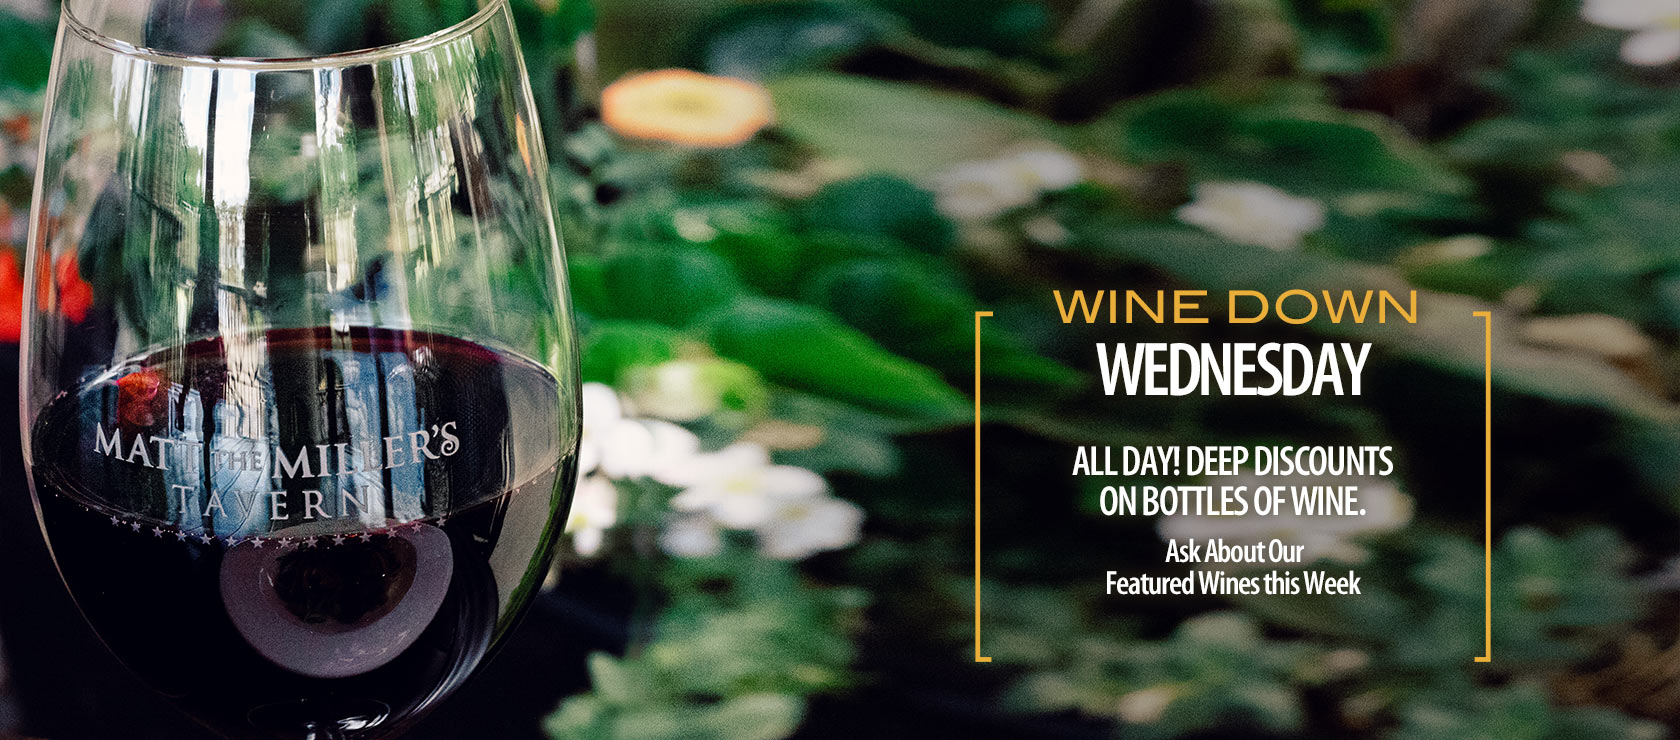 Wine Down Wednesday. All day! Deep discounts on bottles of wine. Ask about our featured wines this week.